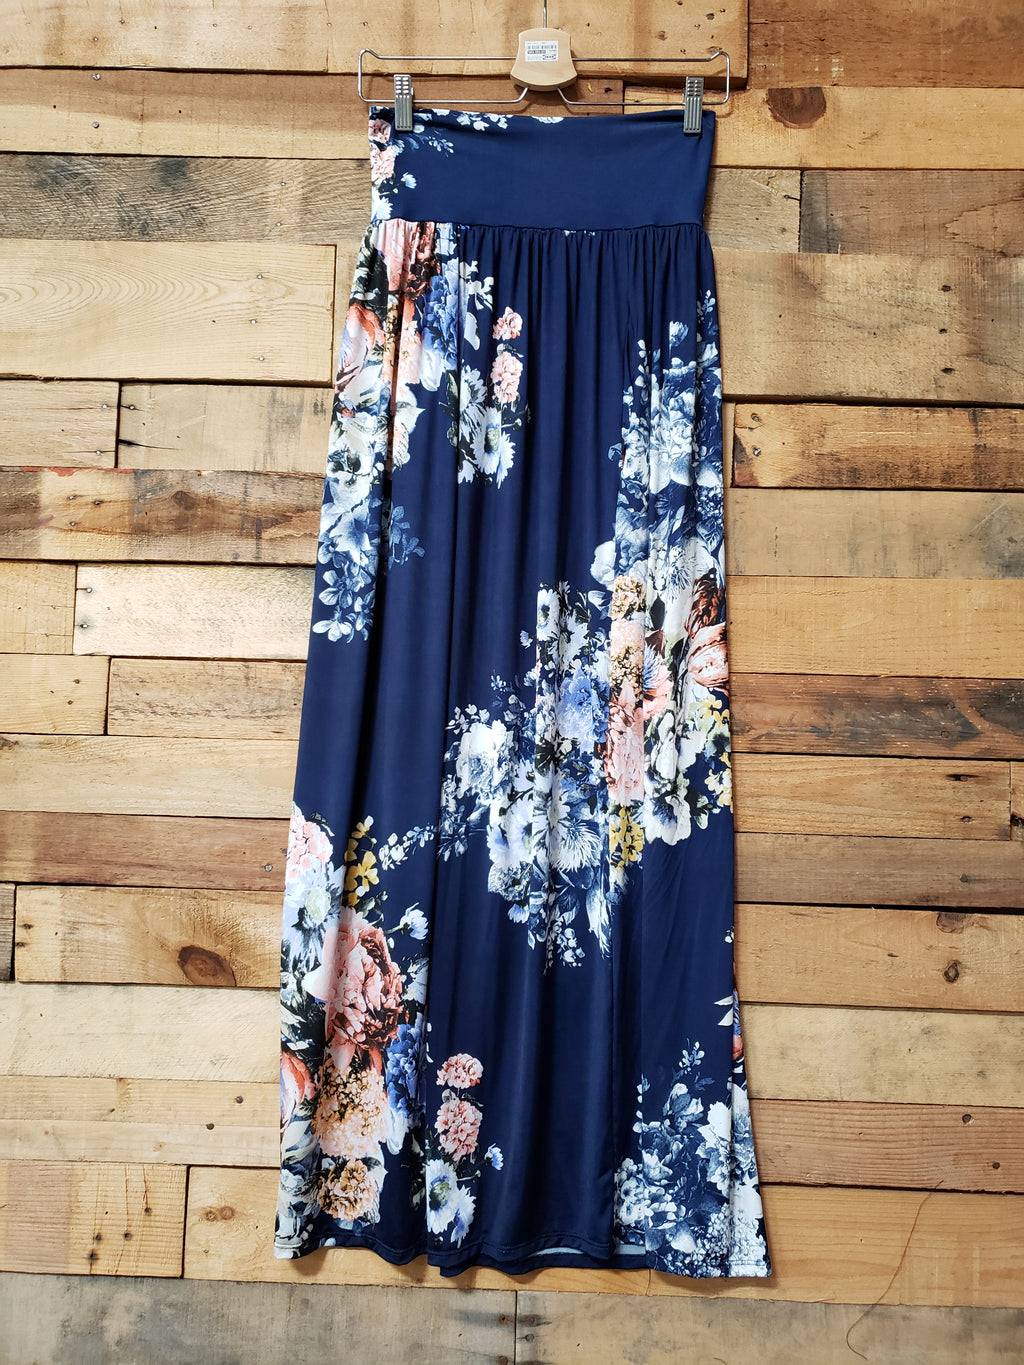 Floral Navy Gathered Maxi Skirt